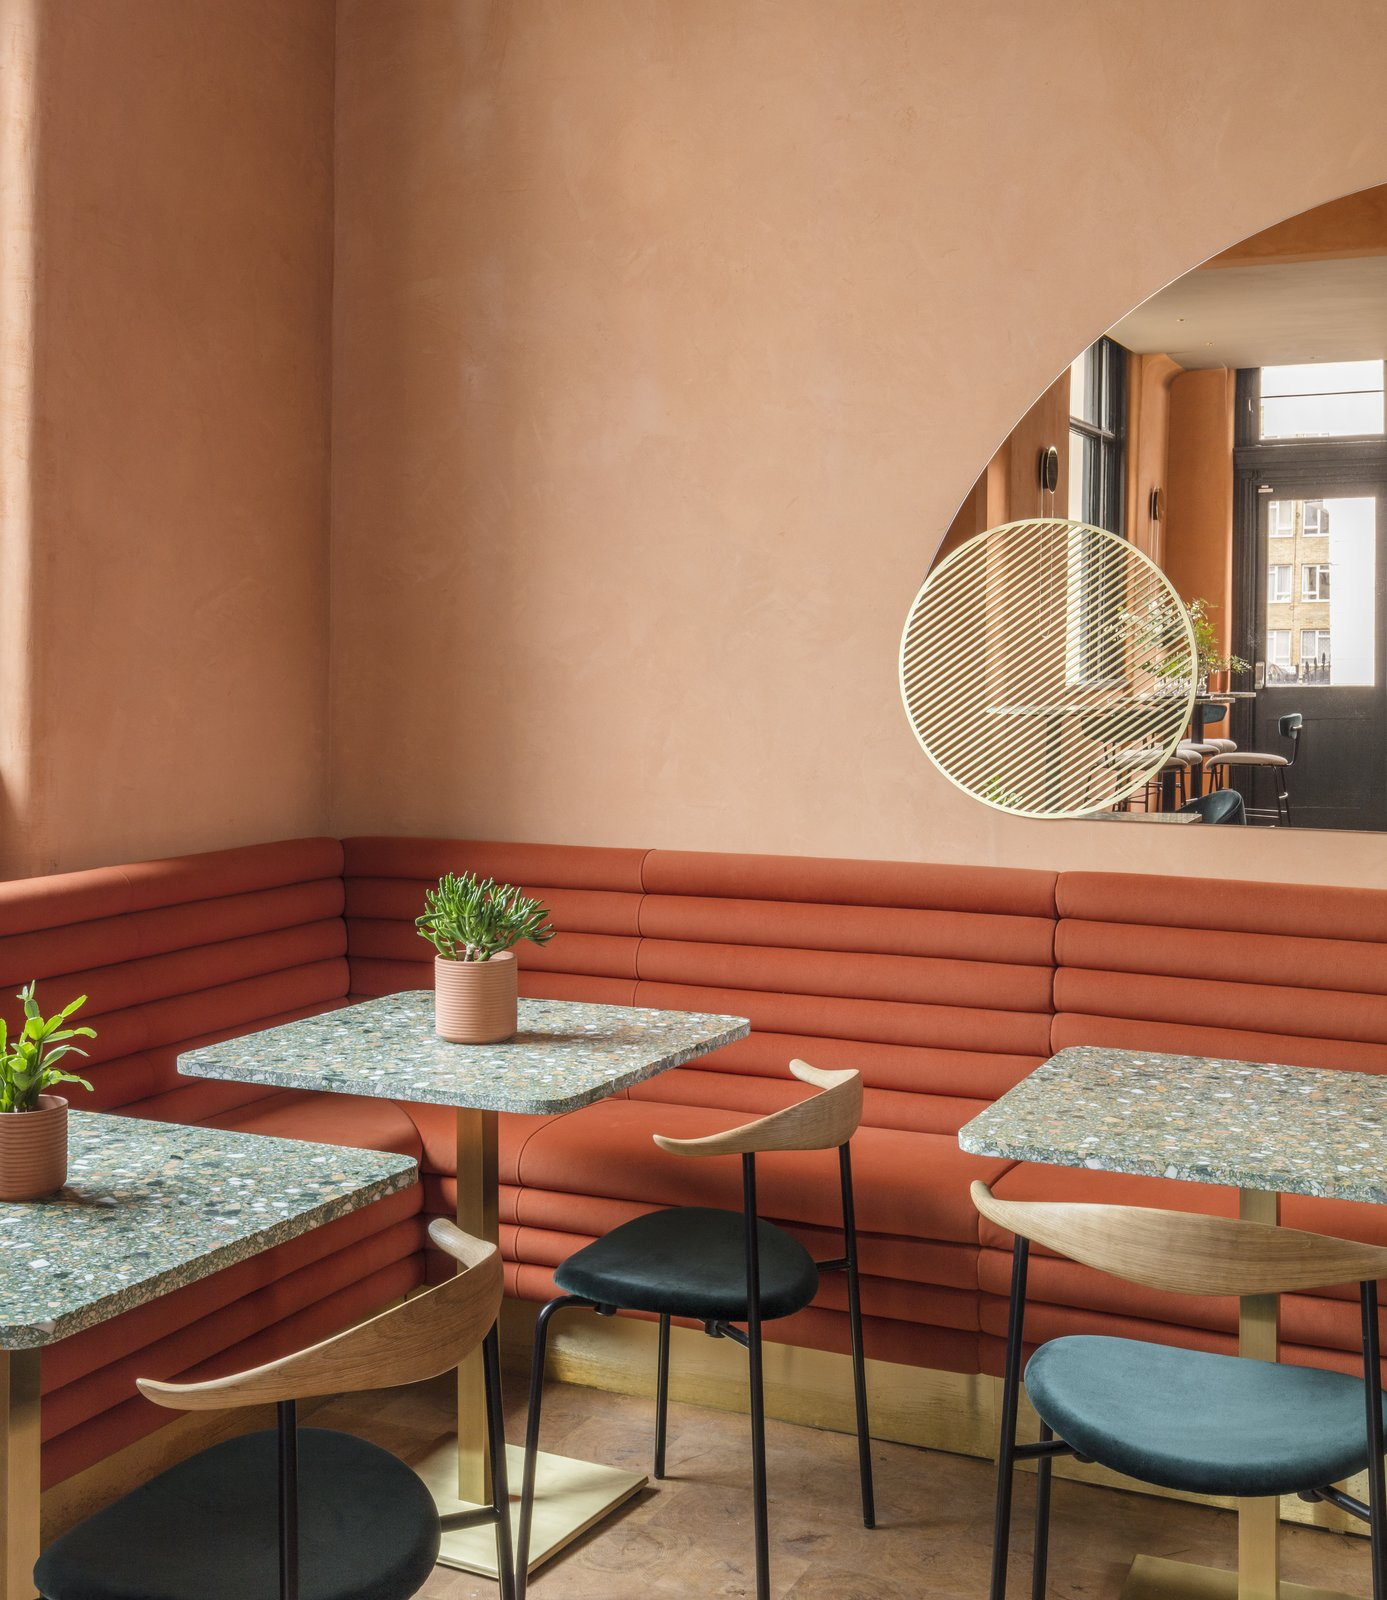 Custom-made rust-colored tubular suede banquettes accentuate the sunny color-palette.